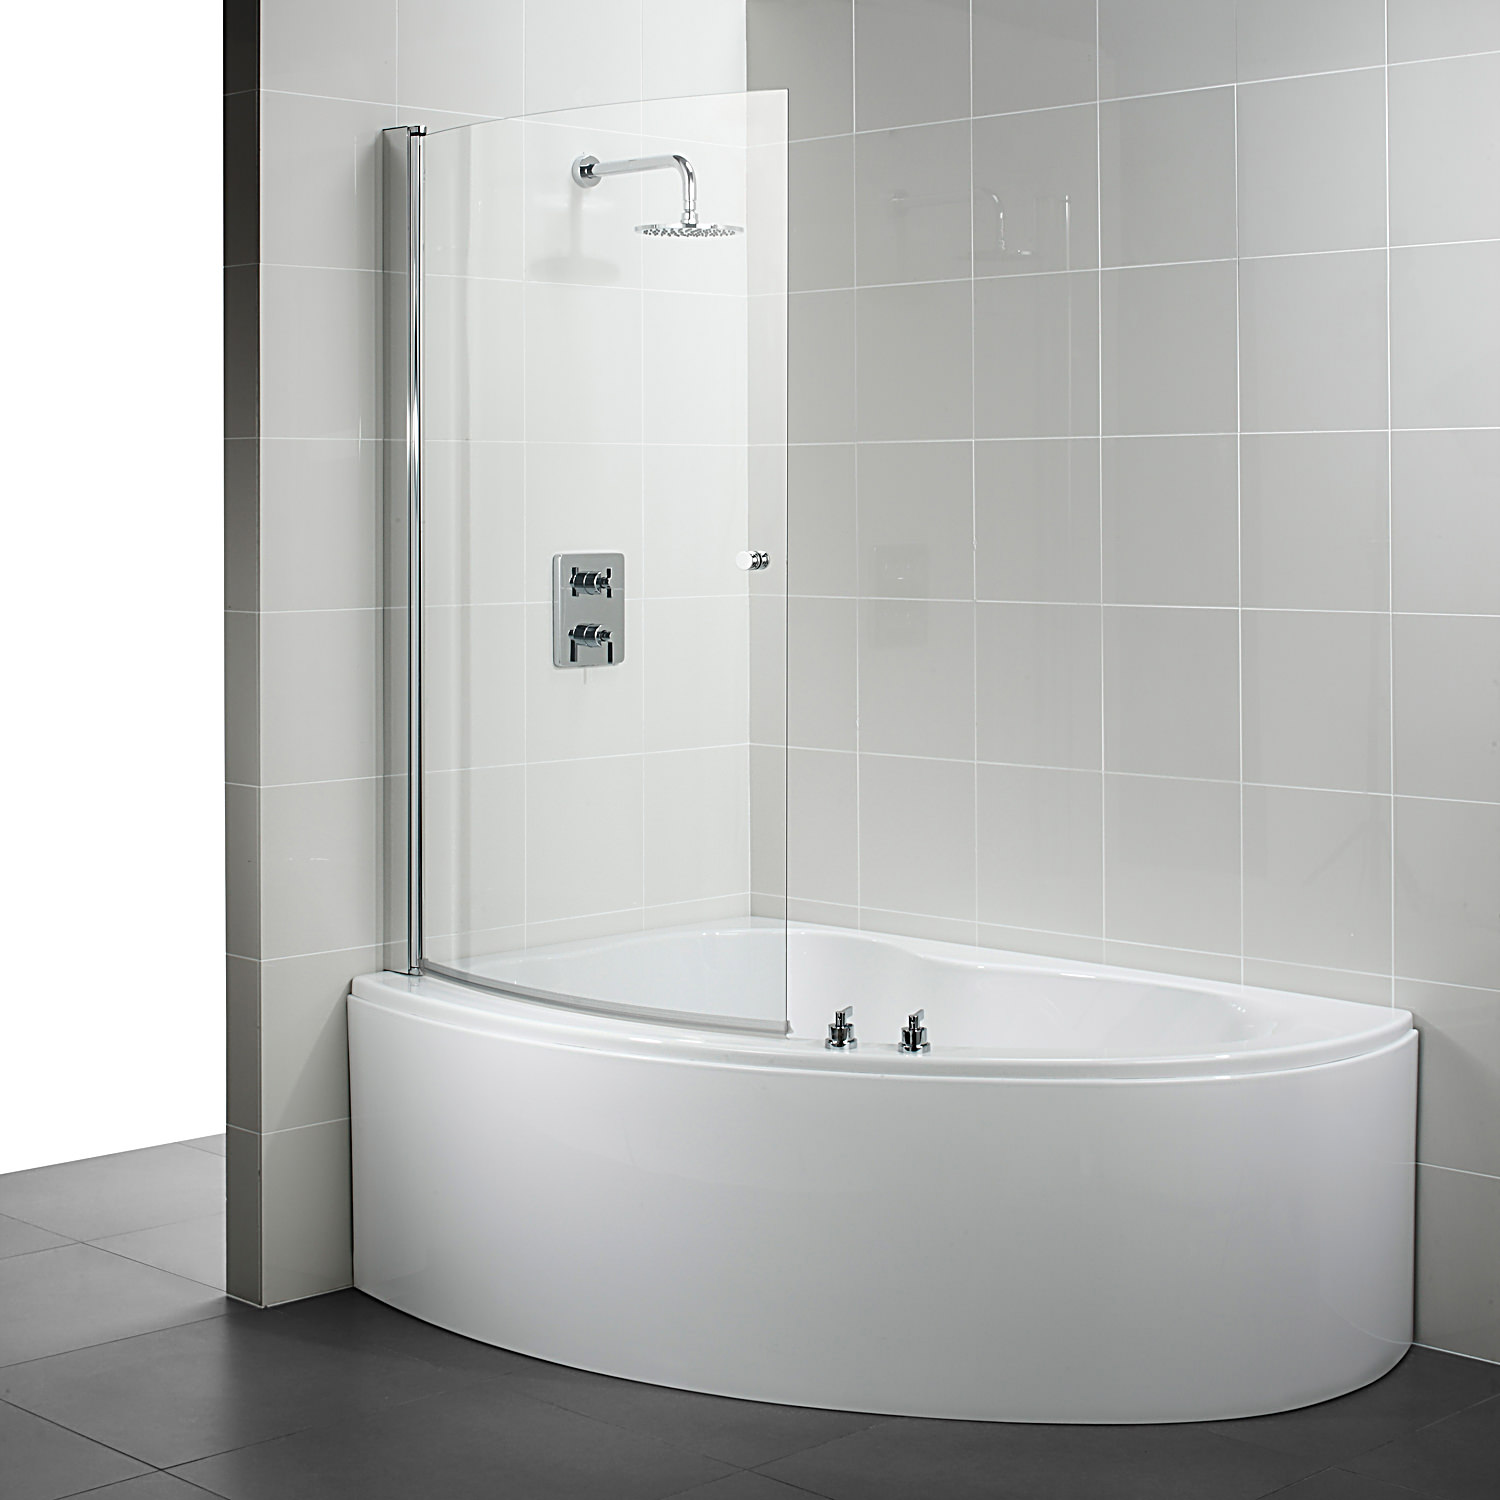 Ideal Standard Create Idealform Offset Corner Bath 1600 X 1050mm